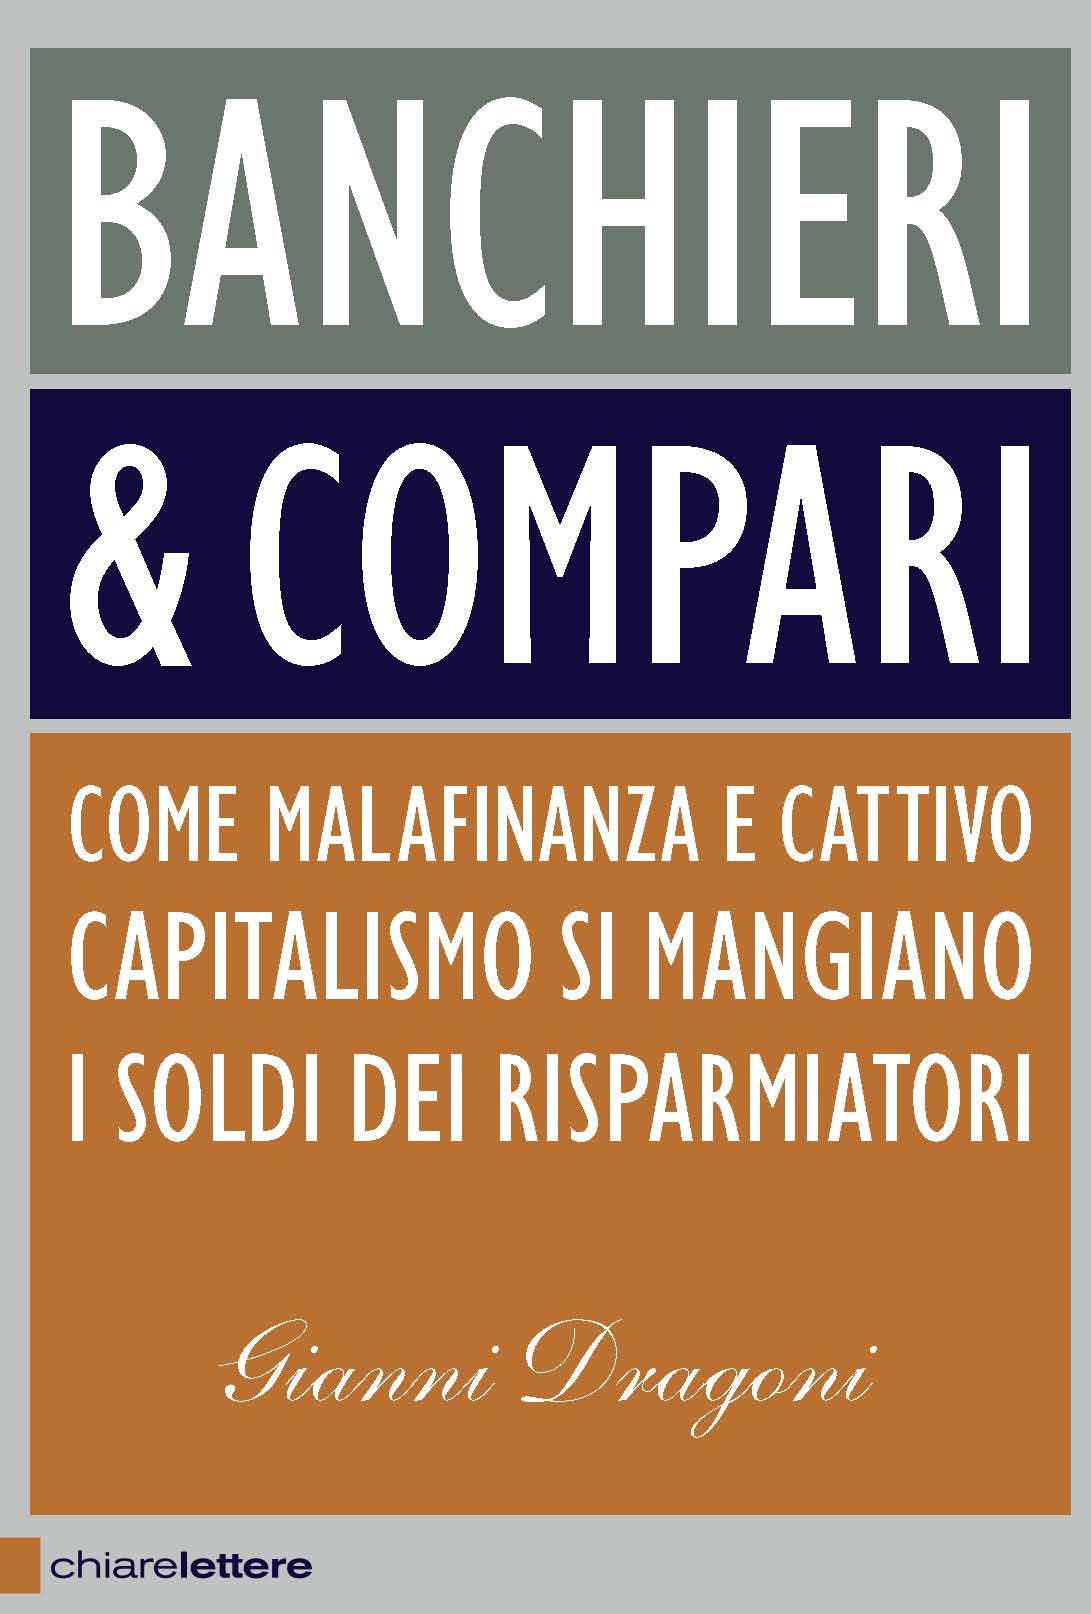 Banchieri & compari